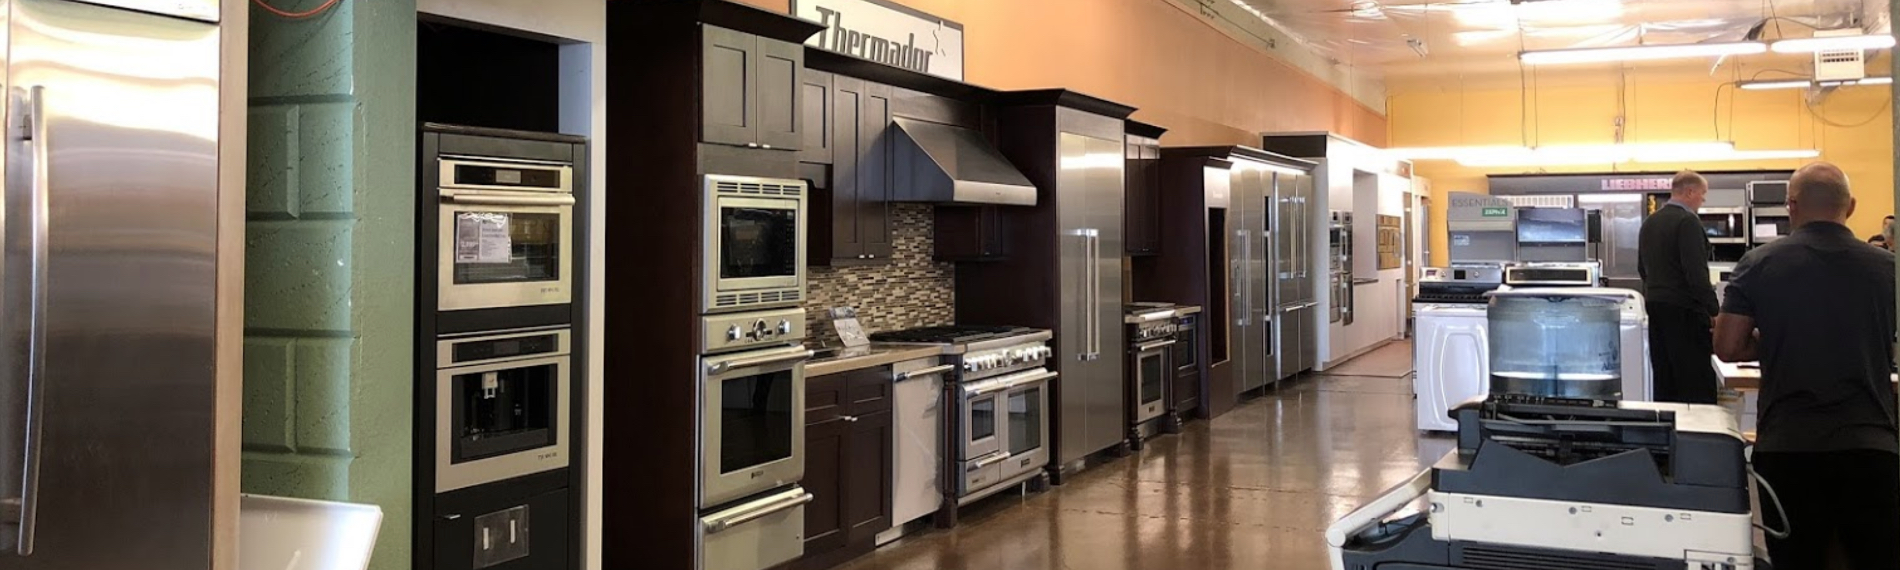 Wide Range of Appliances